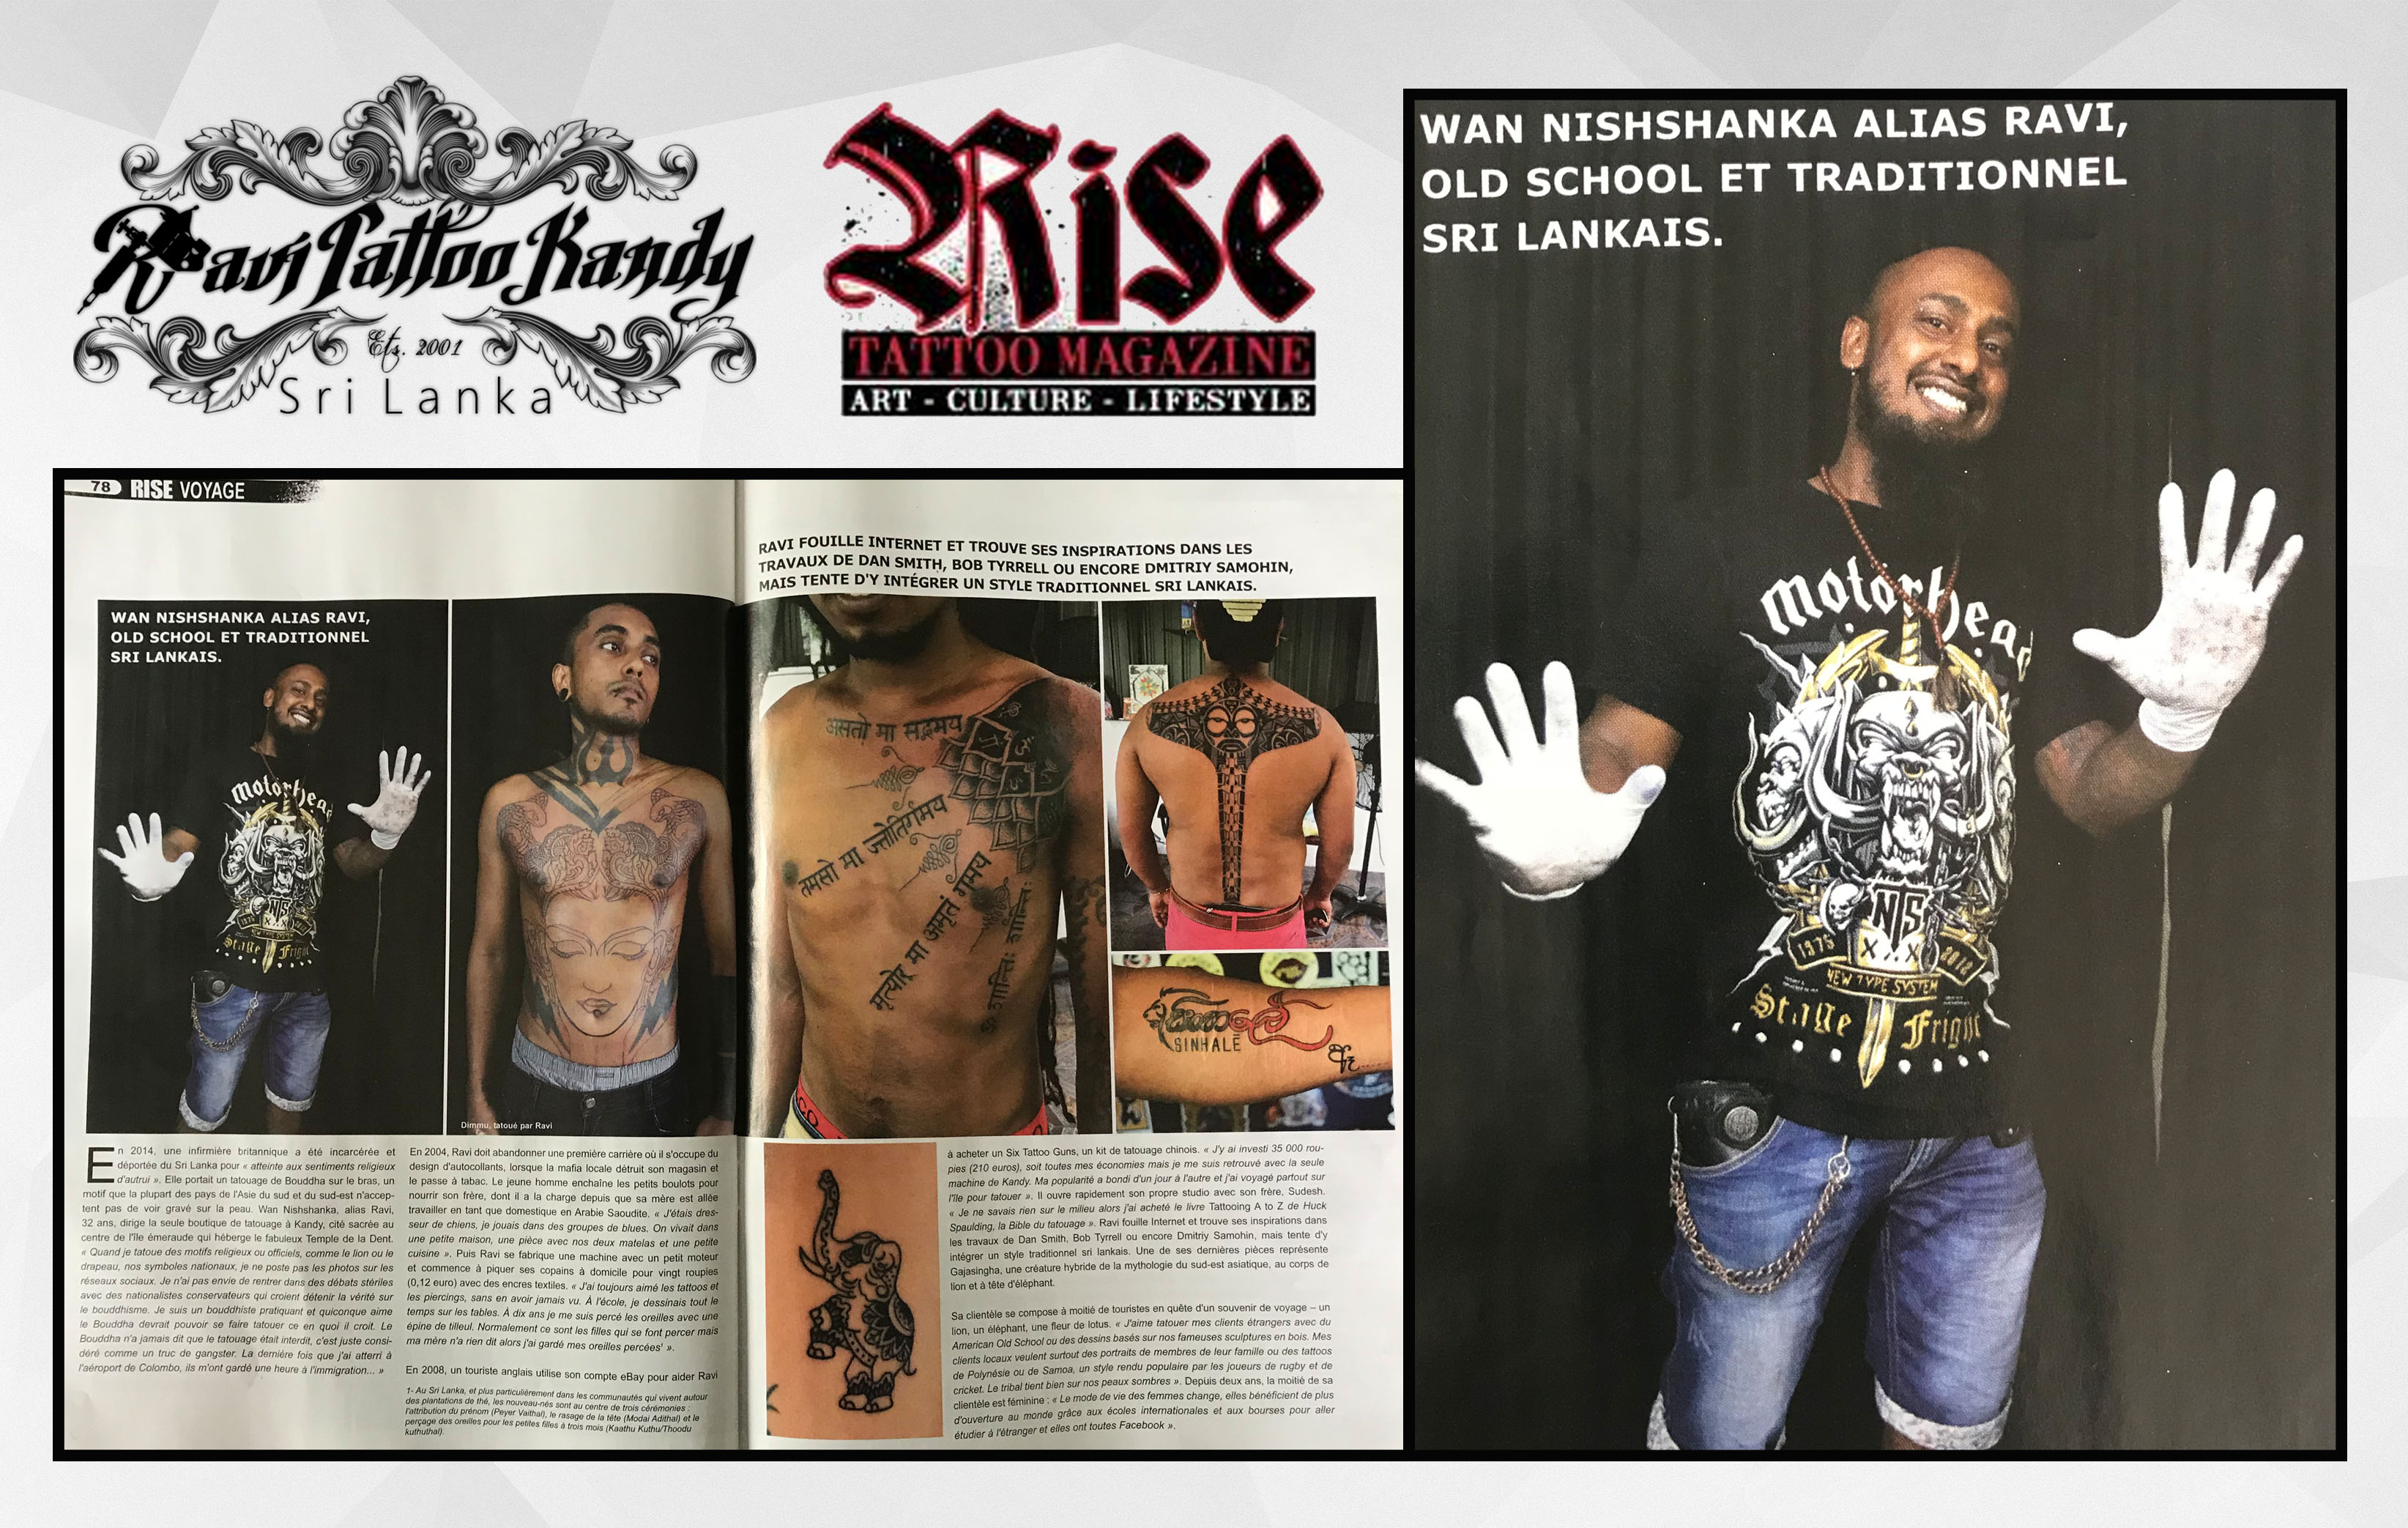 9175d23d0 Weekend Nation Article · Rise Tattoo Magazine Article